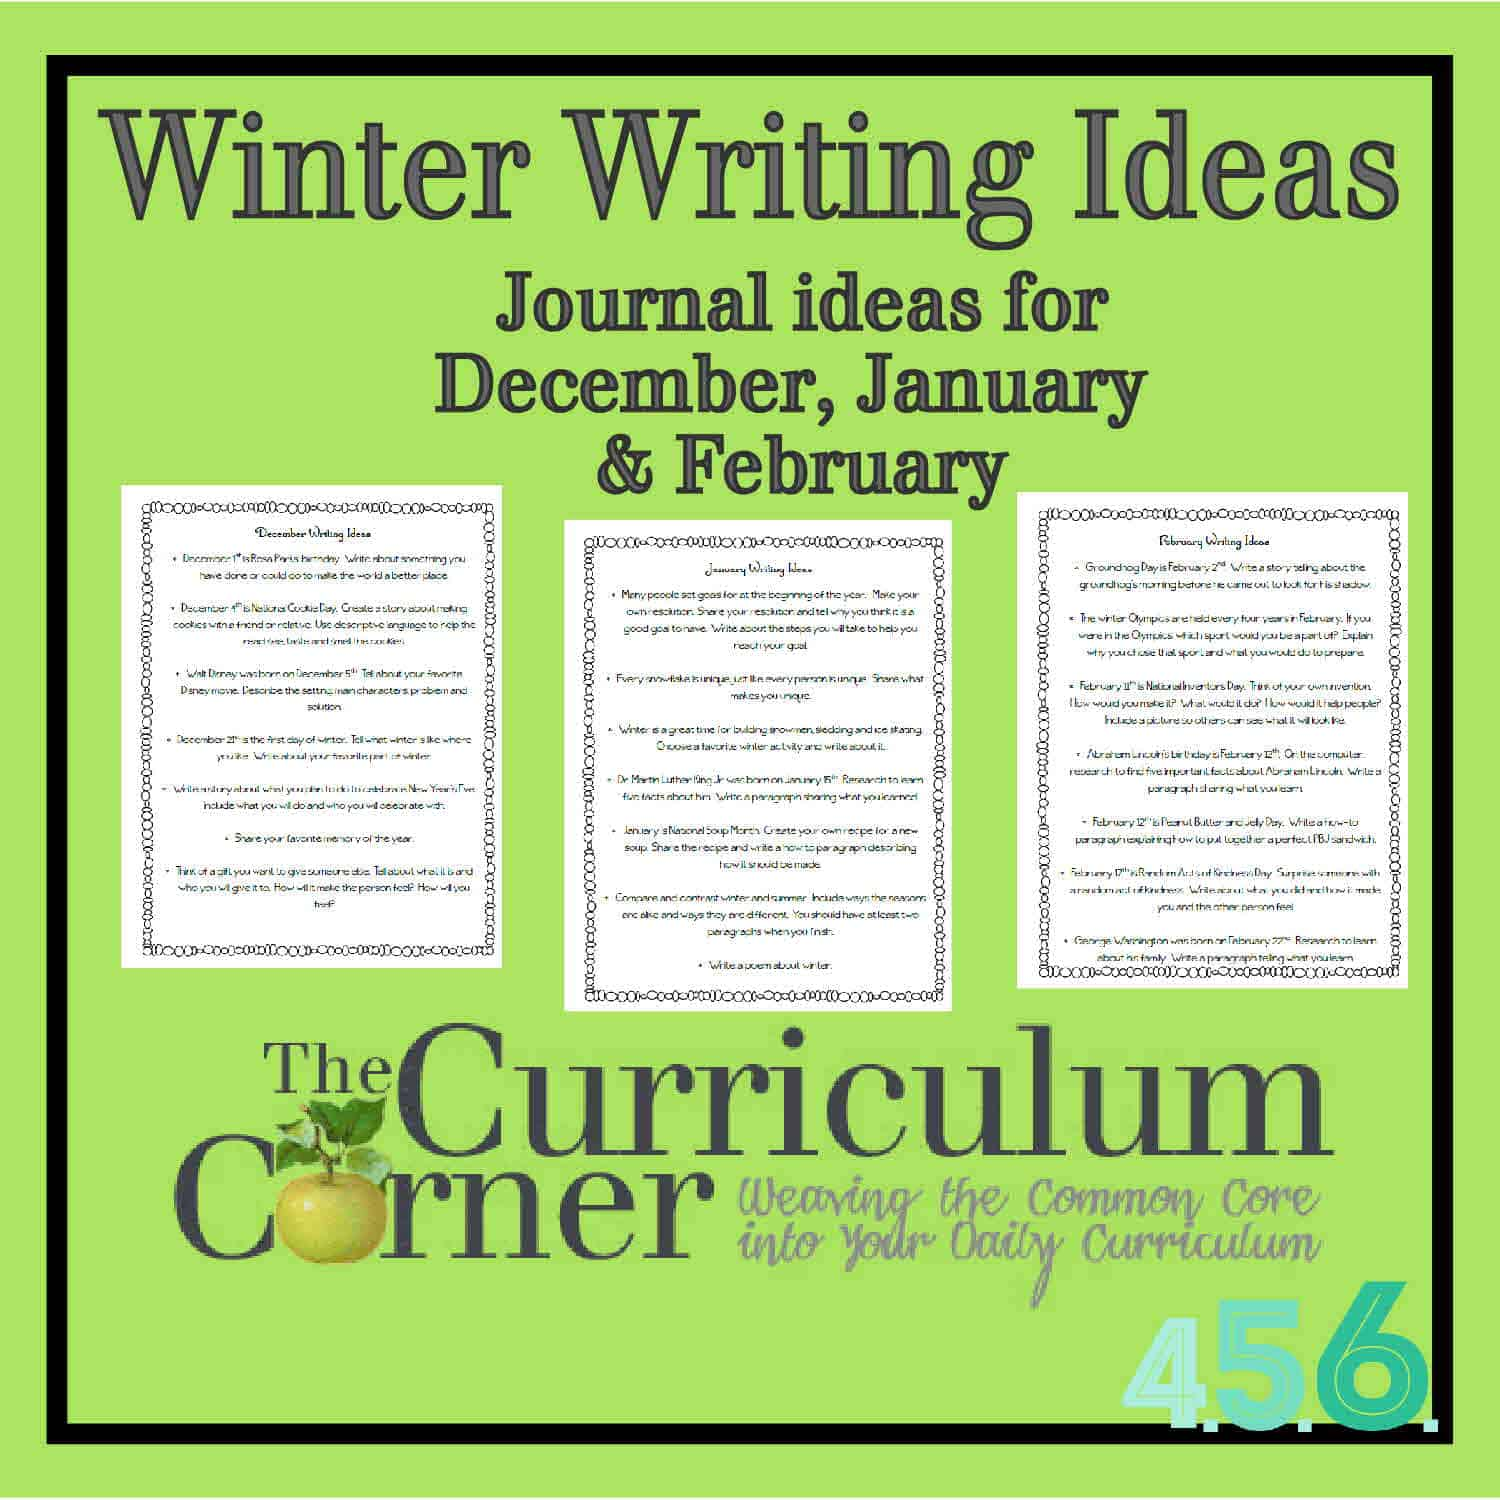 Winter Writing Ideas